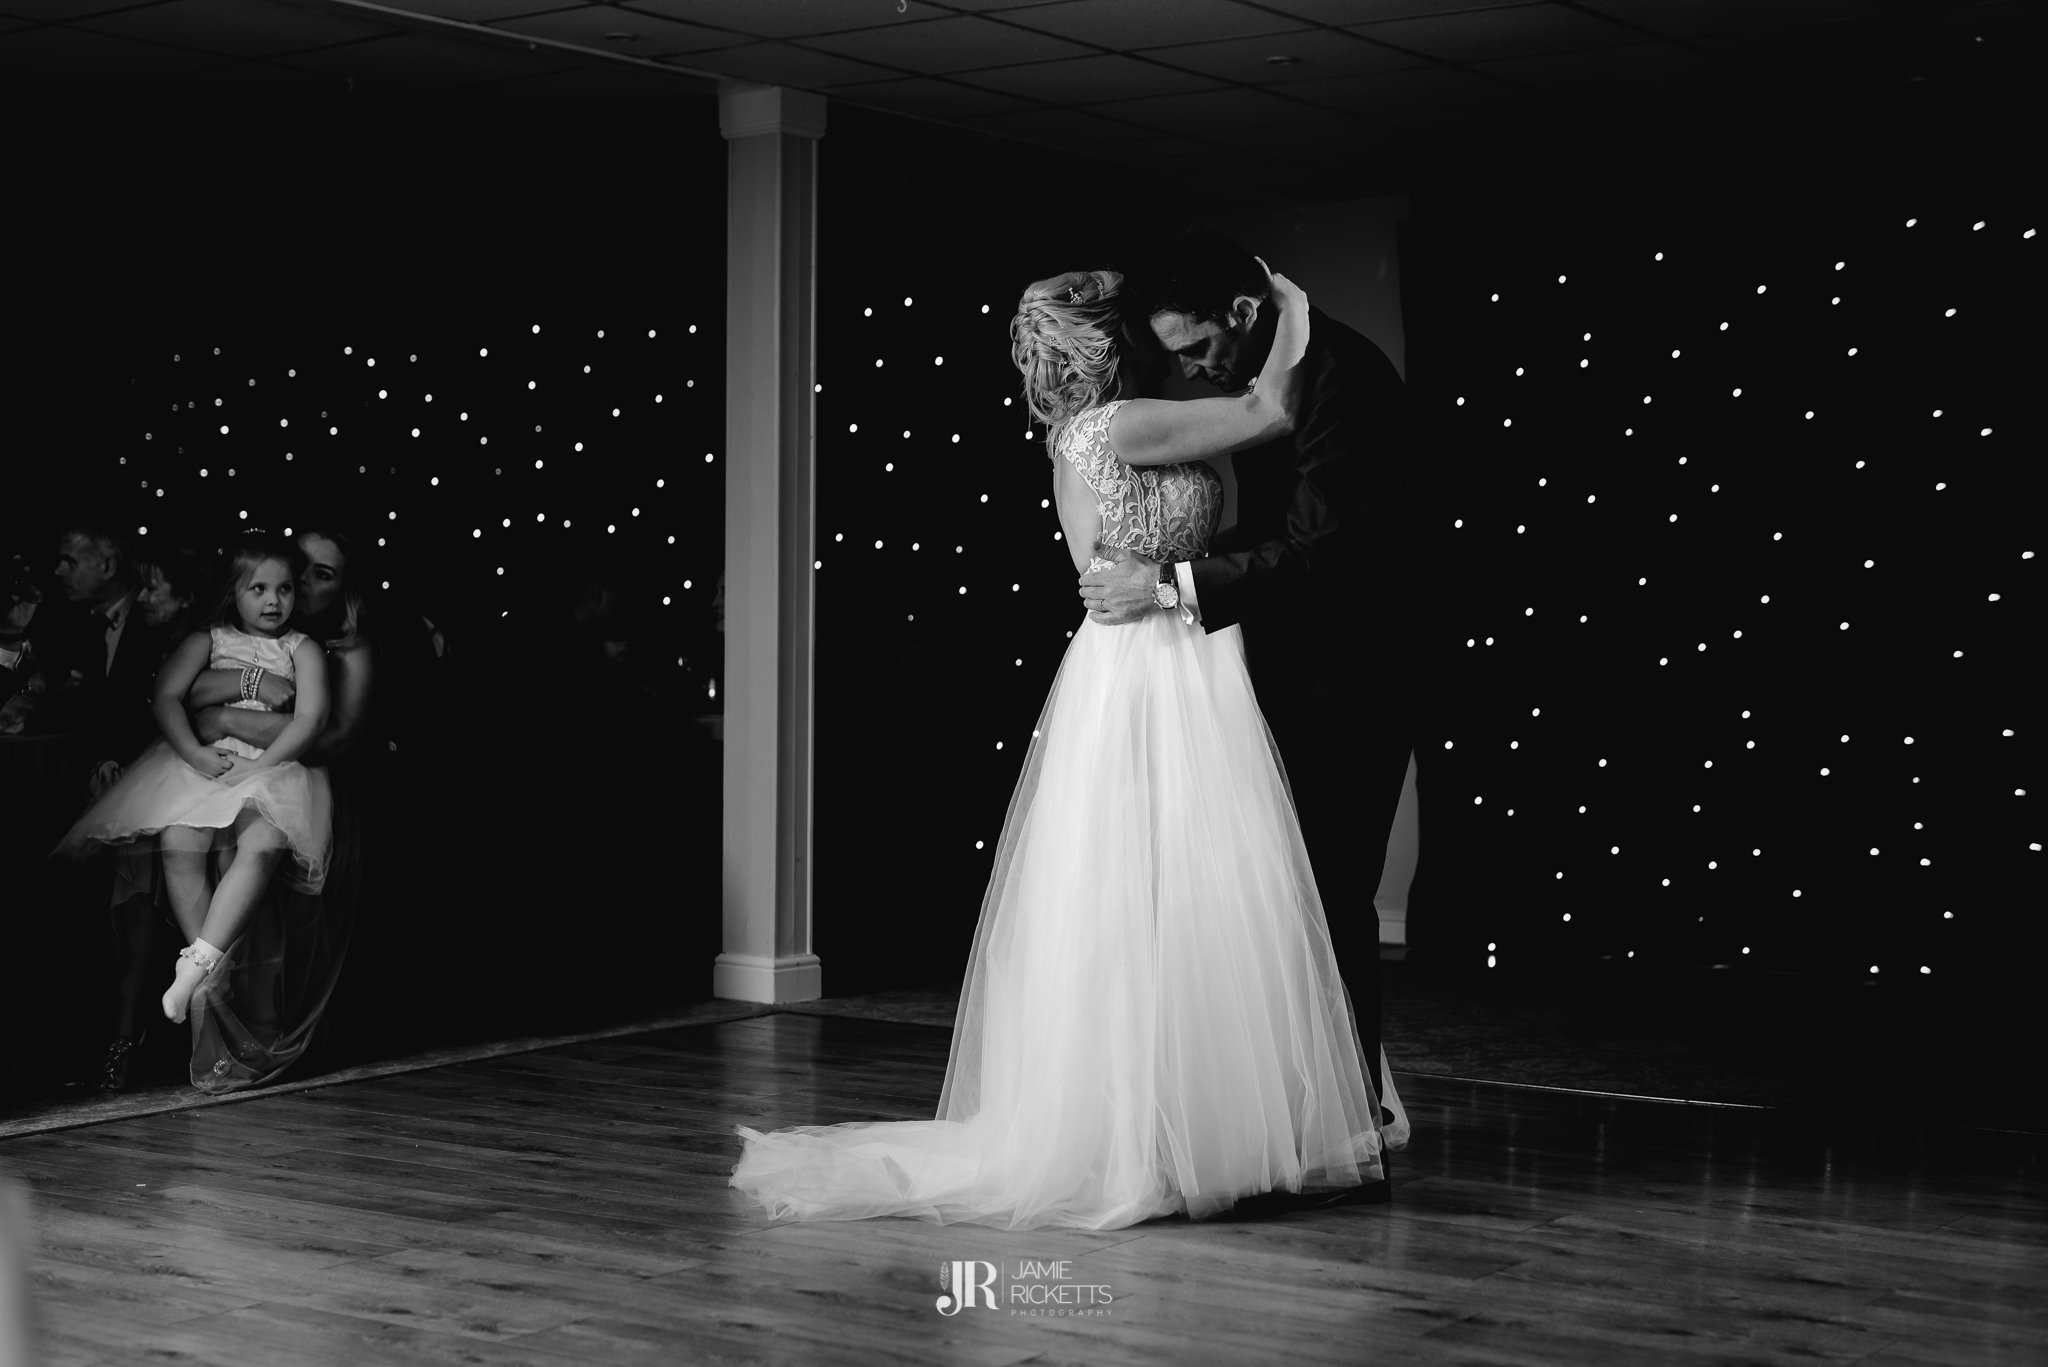 Wroxeter-Hotel-Wedding-Photography-In-Shropshire-By-Shropshire-Wedding-Photographer-Jamie-Ricketts-220.JPG